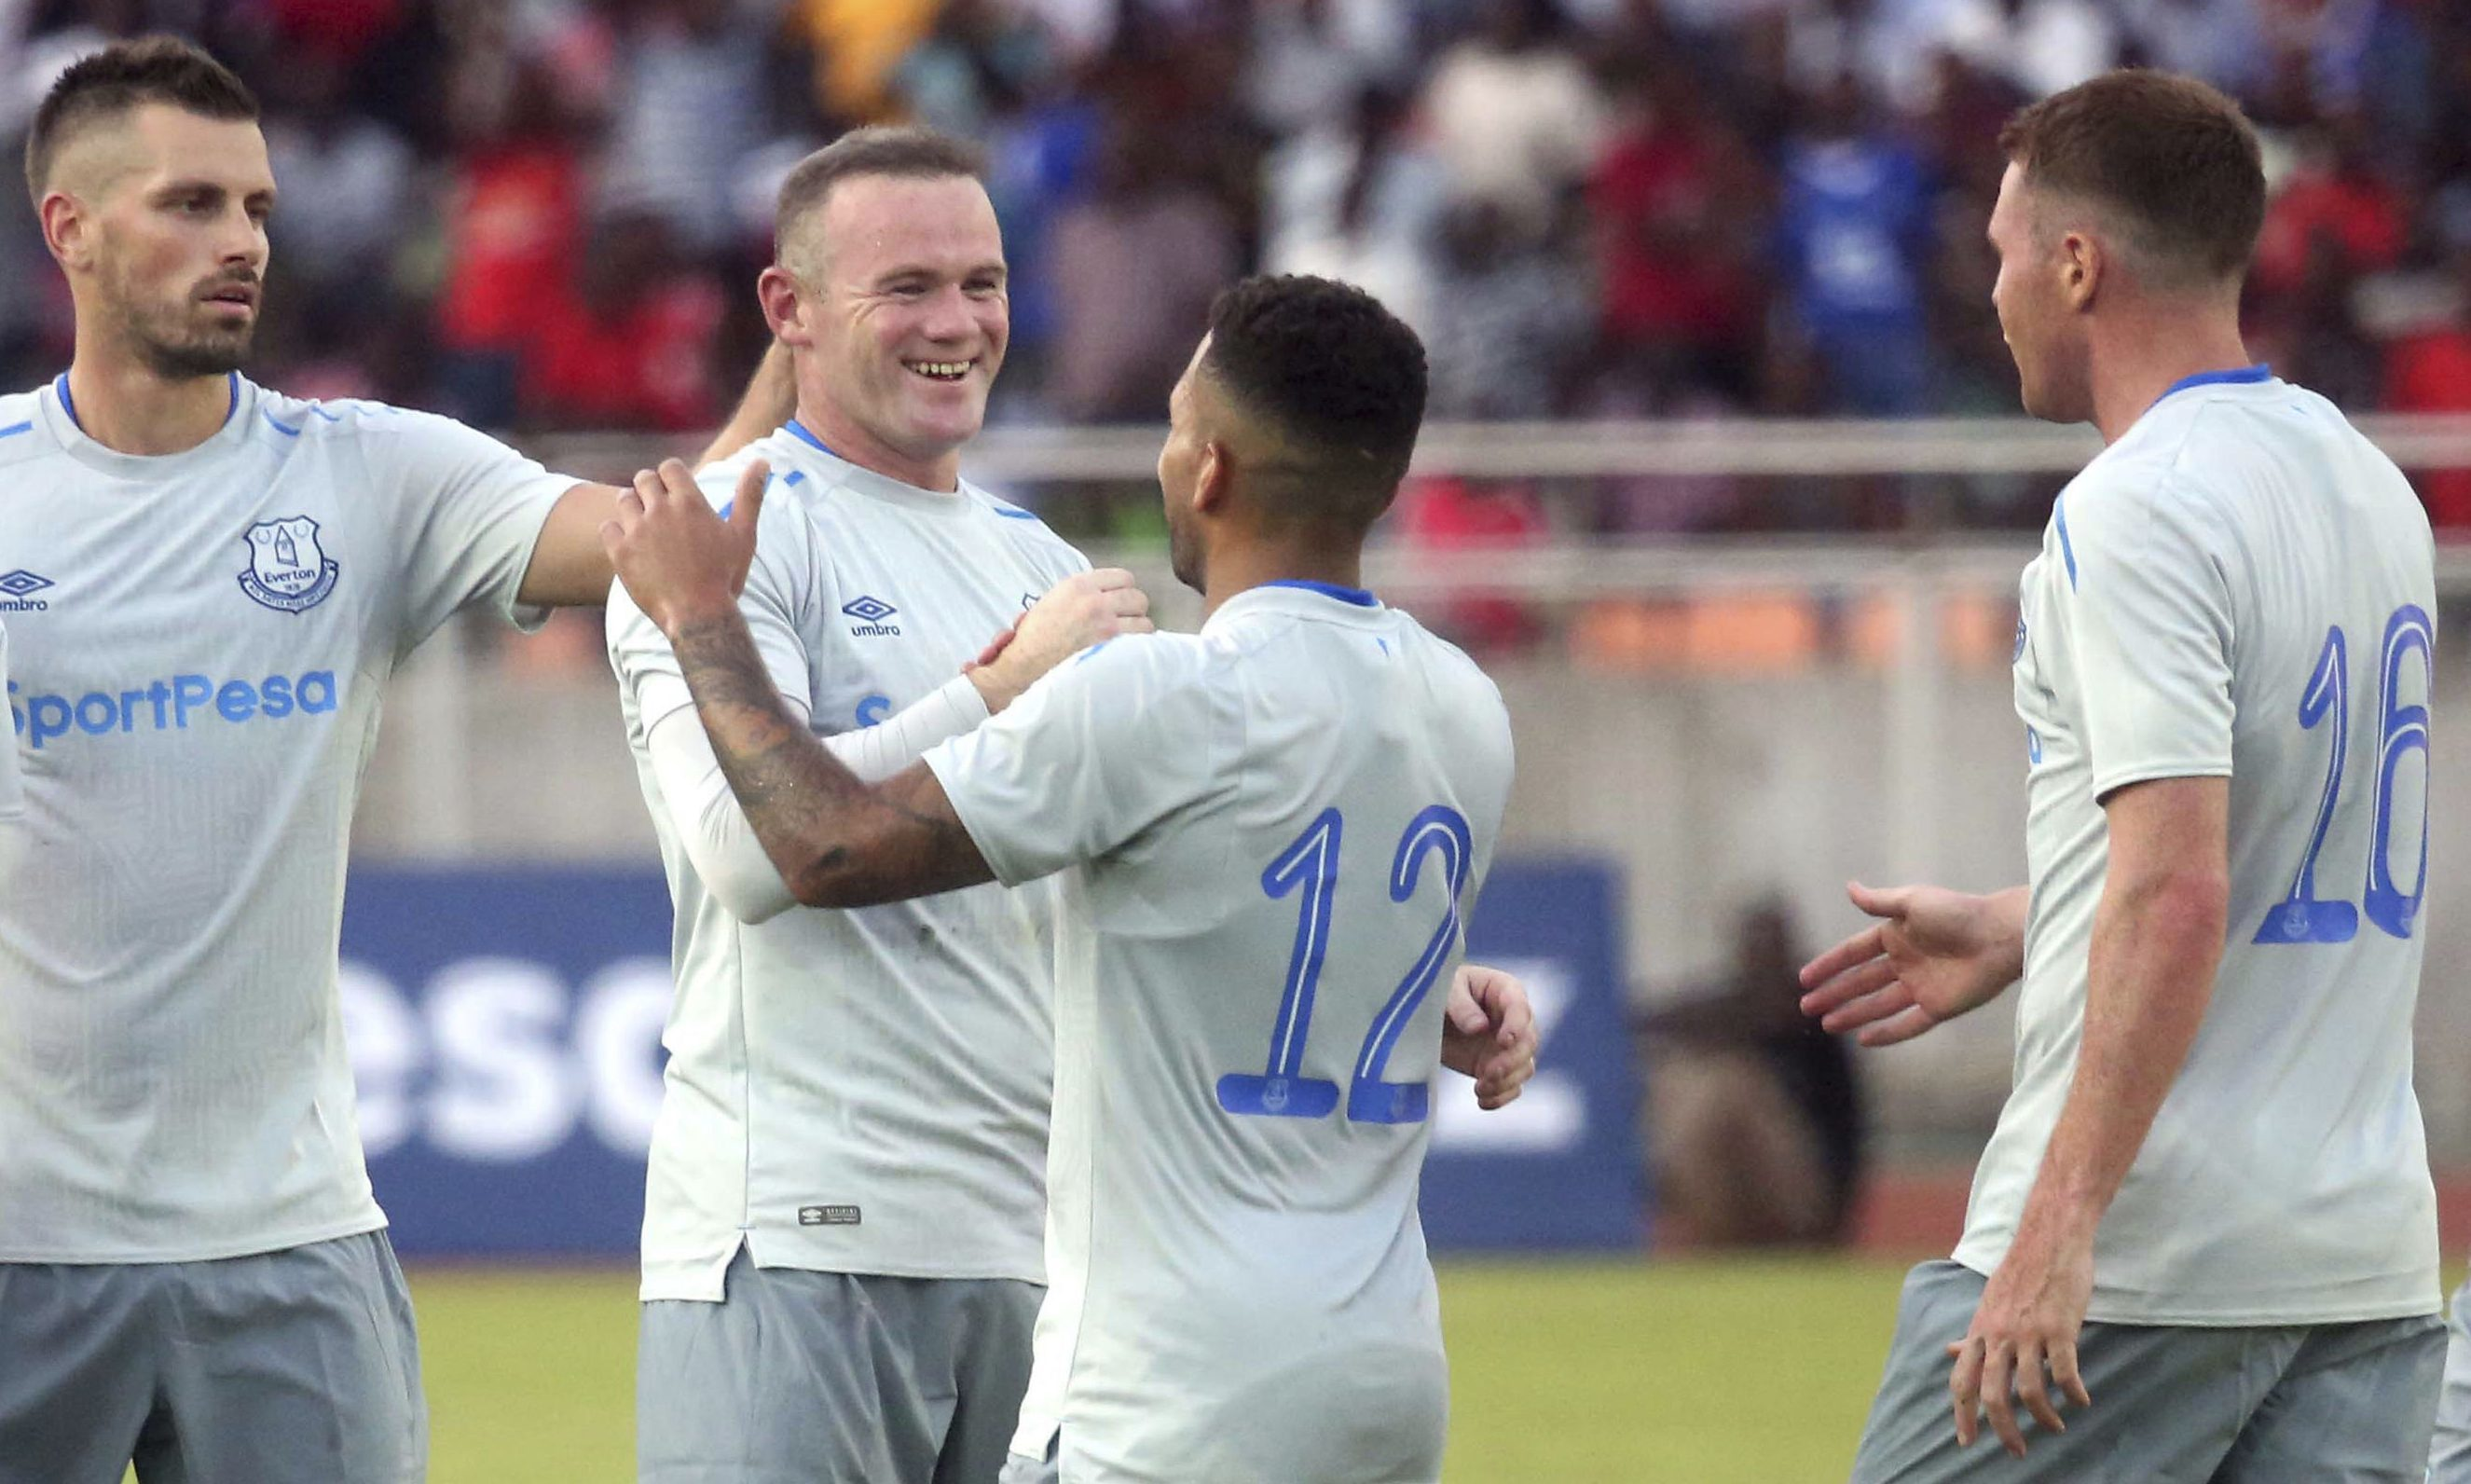 Everton striker Wayne Rooney, 2nd left, is congratulated by teammates after he scored a goal against Kenya's Gor Mahia.